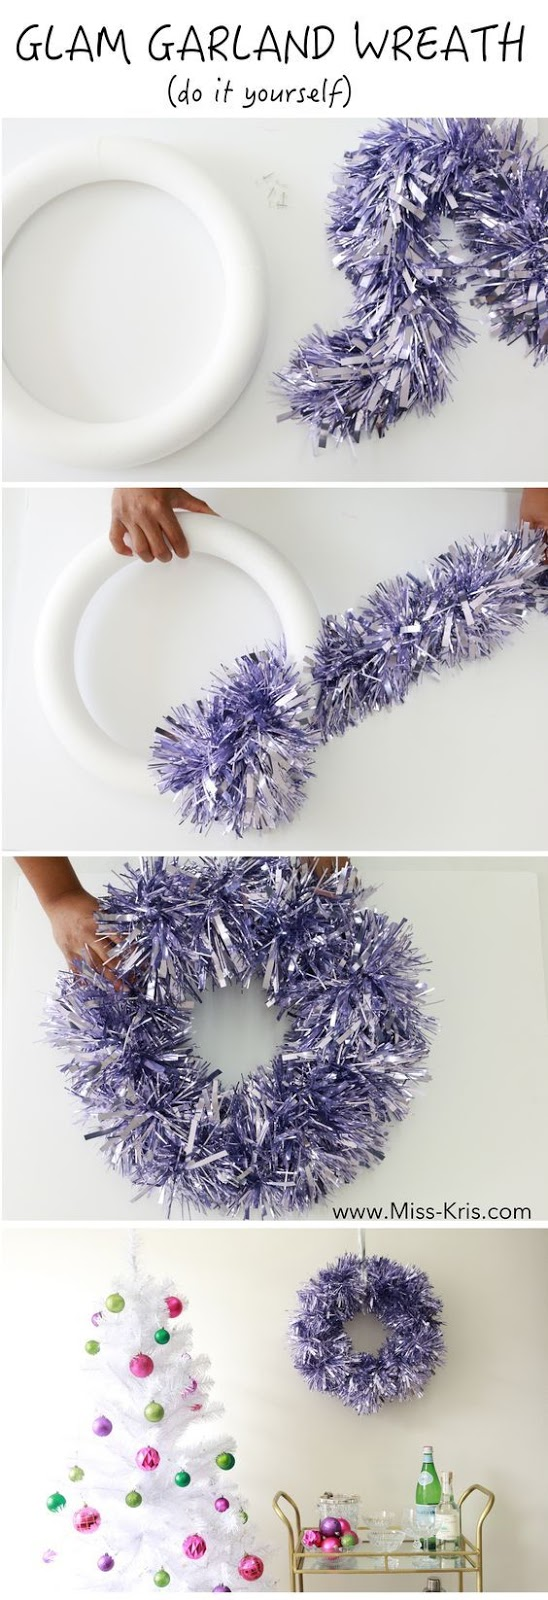 10 Super Easy Decor Ideas for Christmas